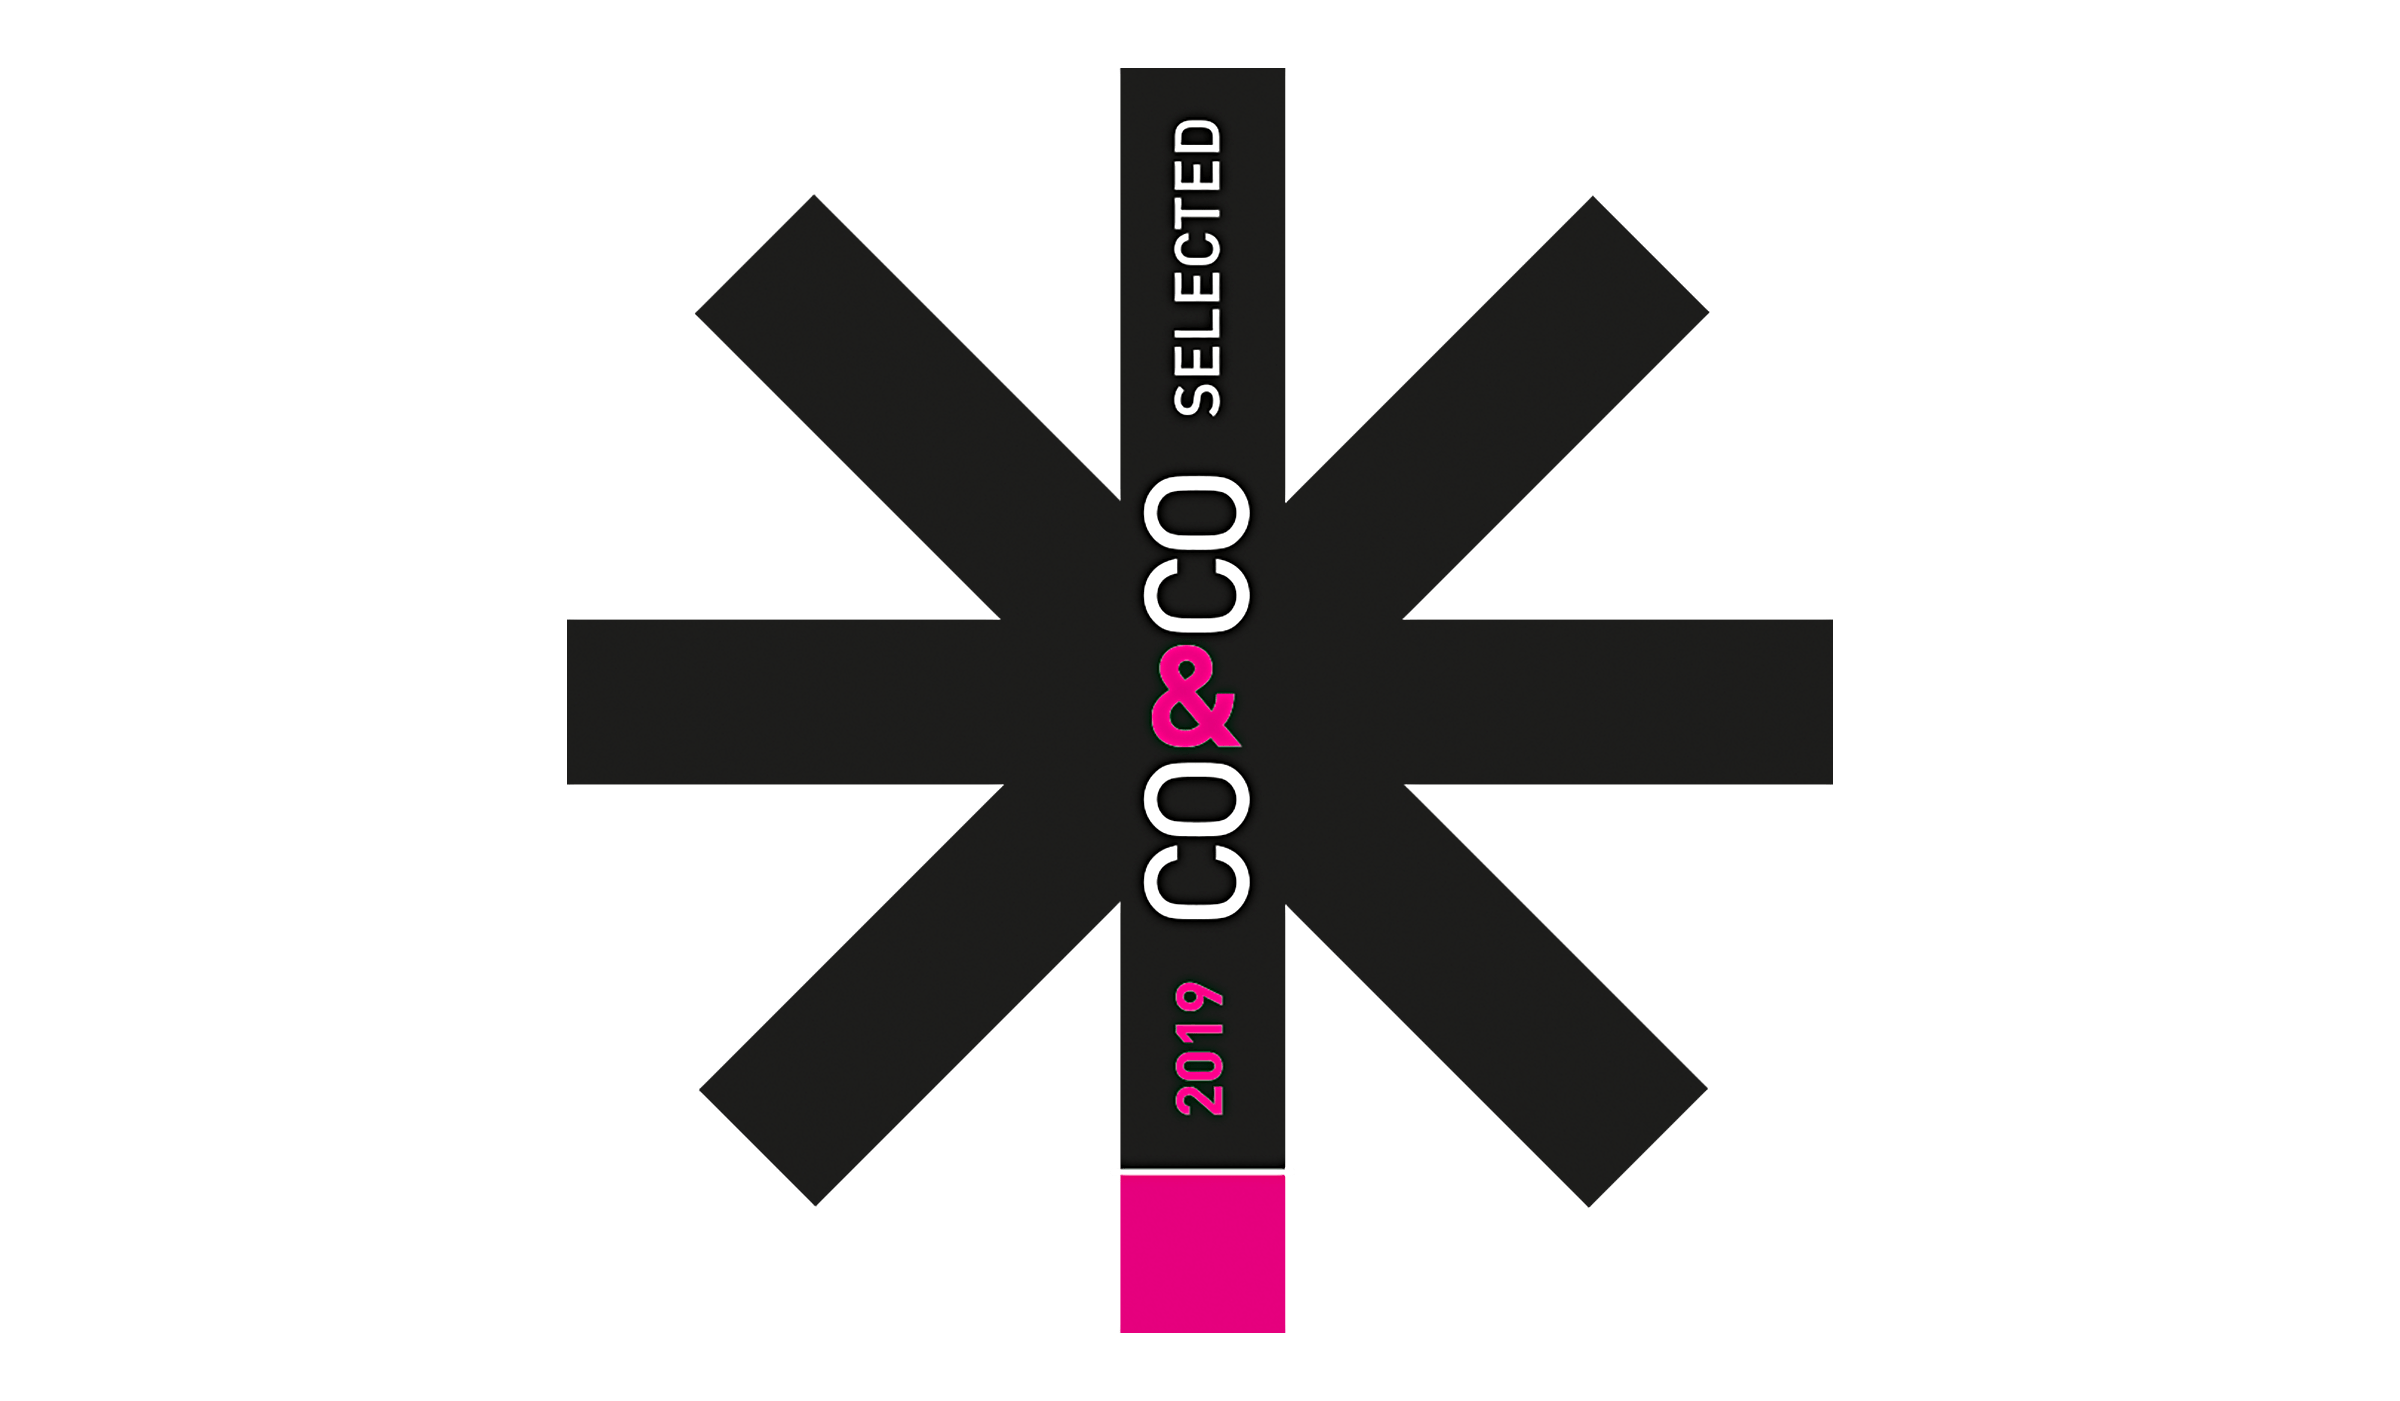 Co&Co – Das Corporate Design Magazin/ CO&CO Selected 2019 Magenta/ Branding Sesyco/ KERSTIN MICHELS – DESIGN/ Brand Design/ Corporate Design/ Logodesign/ Erscheinungsbild/ Formgebung/ Corporate Identity/ Unternehmensauftritt/ Marketingmaßnahmen/ Grafikdesign/ Kommunikationsdesign/ Design/ visuelle Identität/ Unternehmensidentität/ Hermeskeil/ Trier/ Rheinland-Pfalz/ Saarland/ Luxemburg/ Werbung